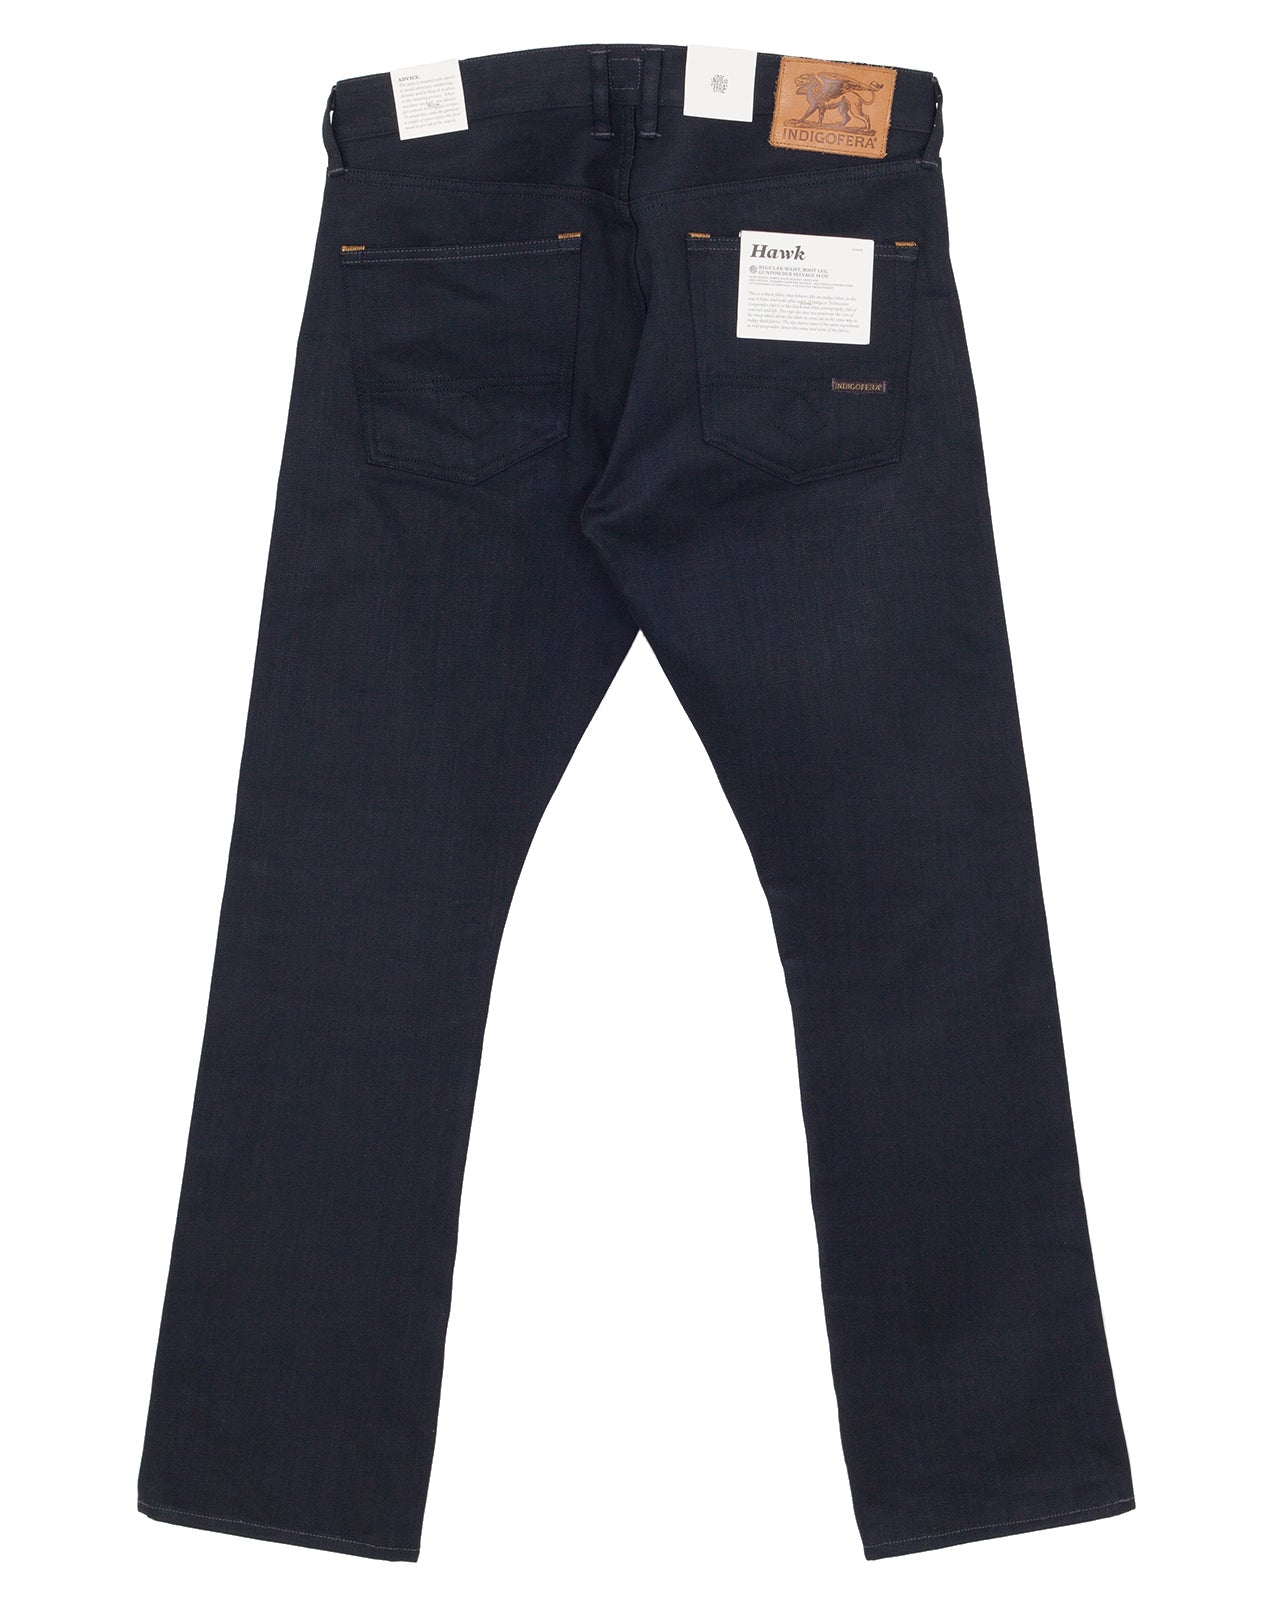 Indigofera Iconic Hawk Jeans, Gunpowder